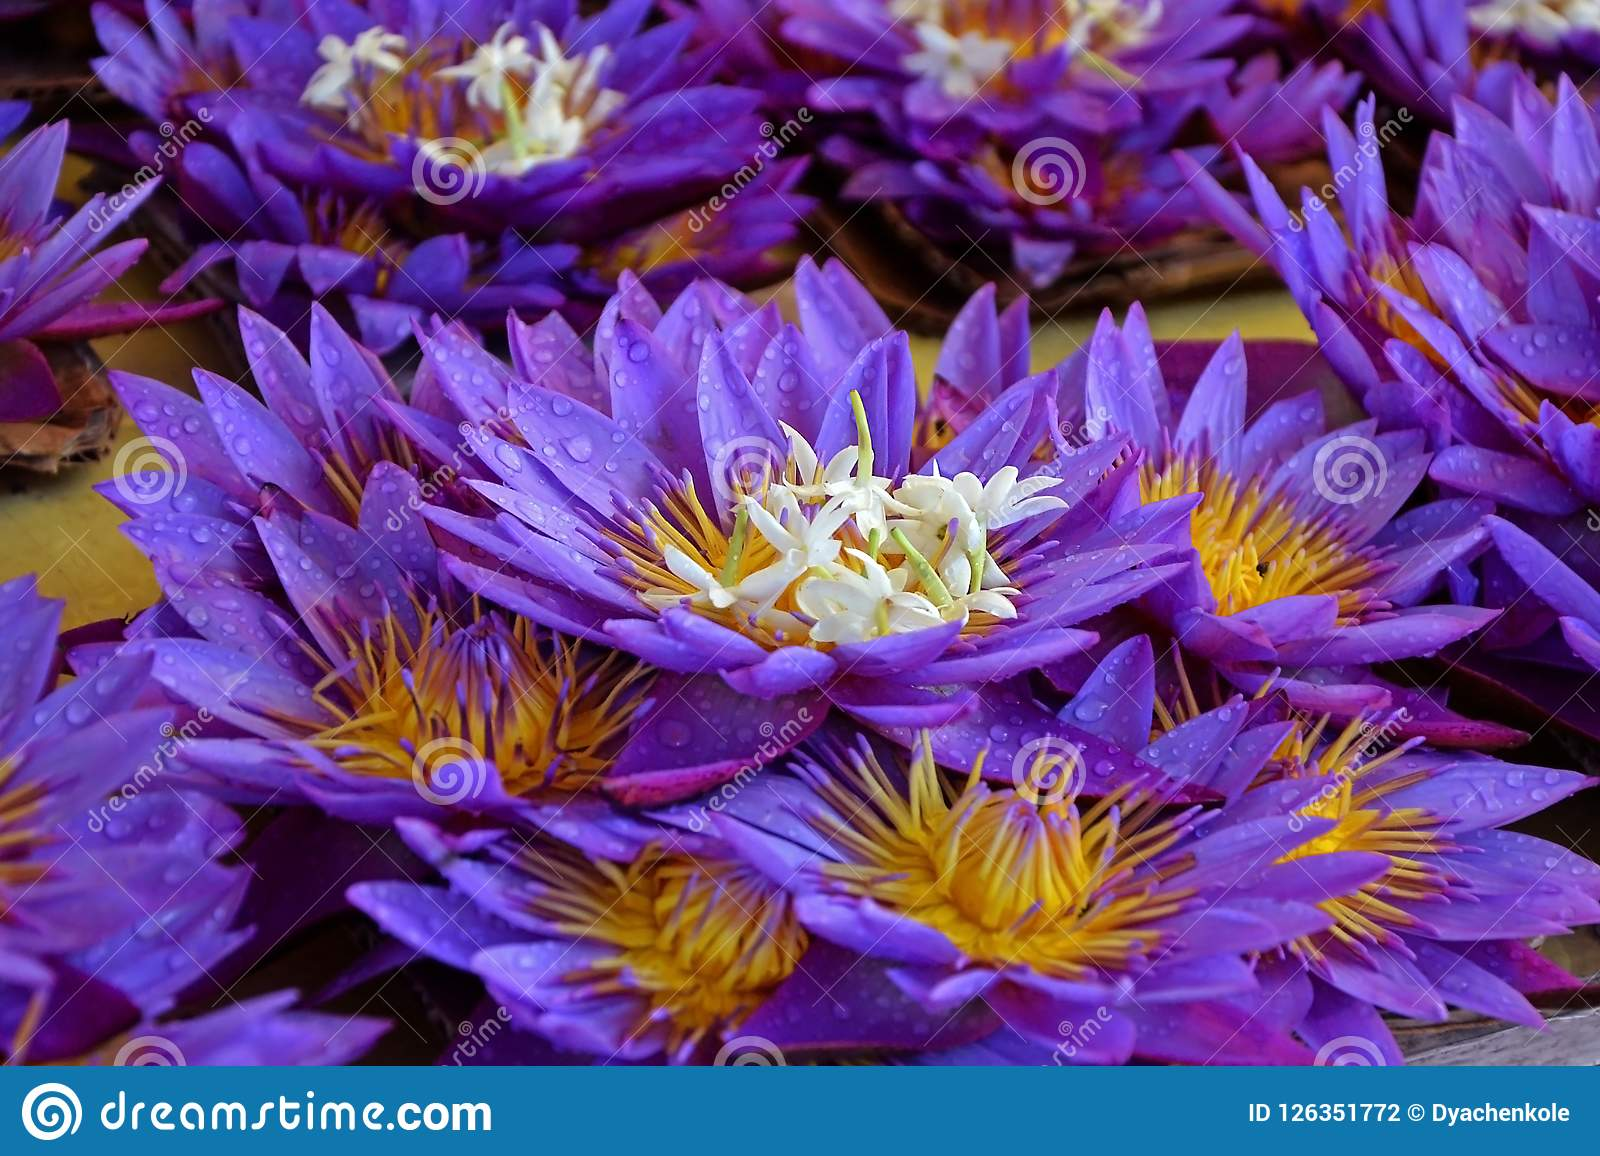 Lotus Flowers With Drops Of Dew Sale Of Flowers Freshness Morning